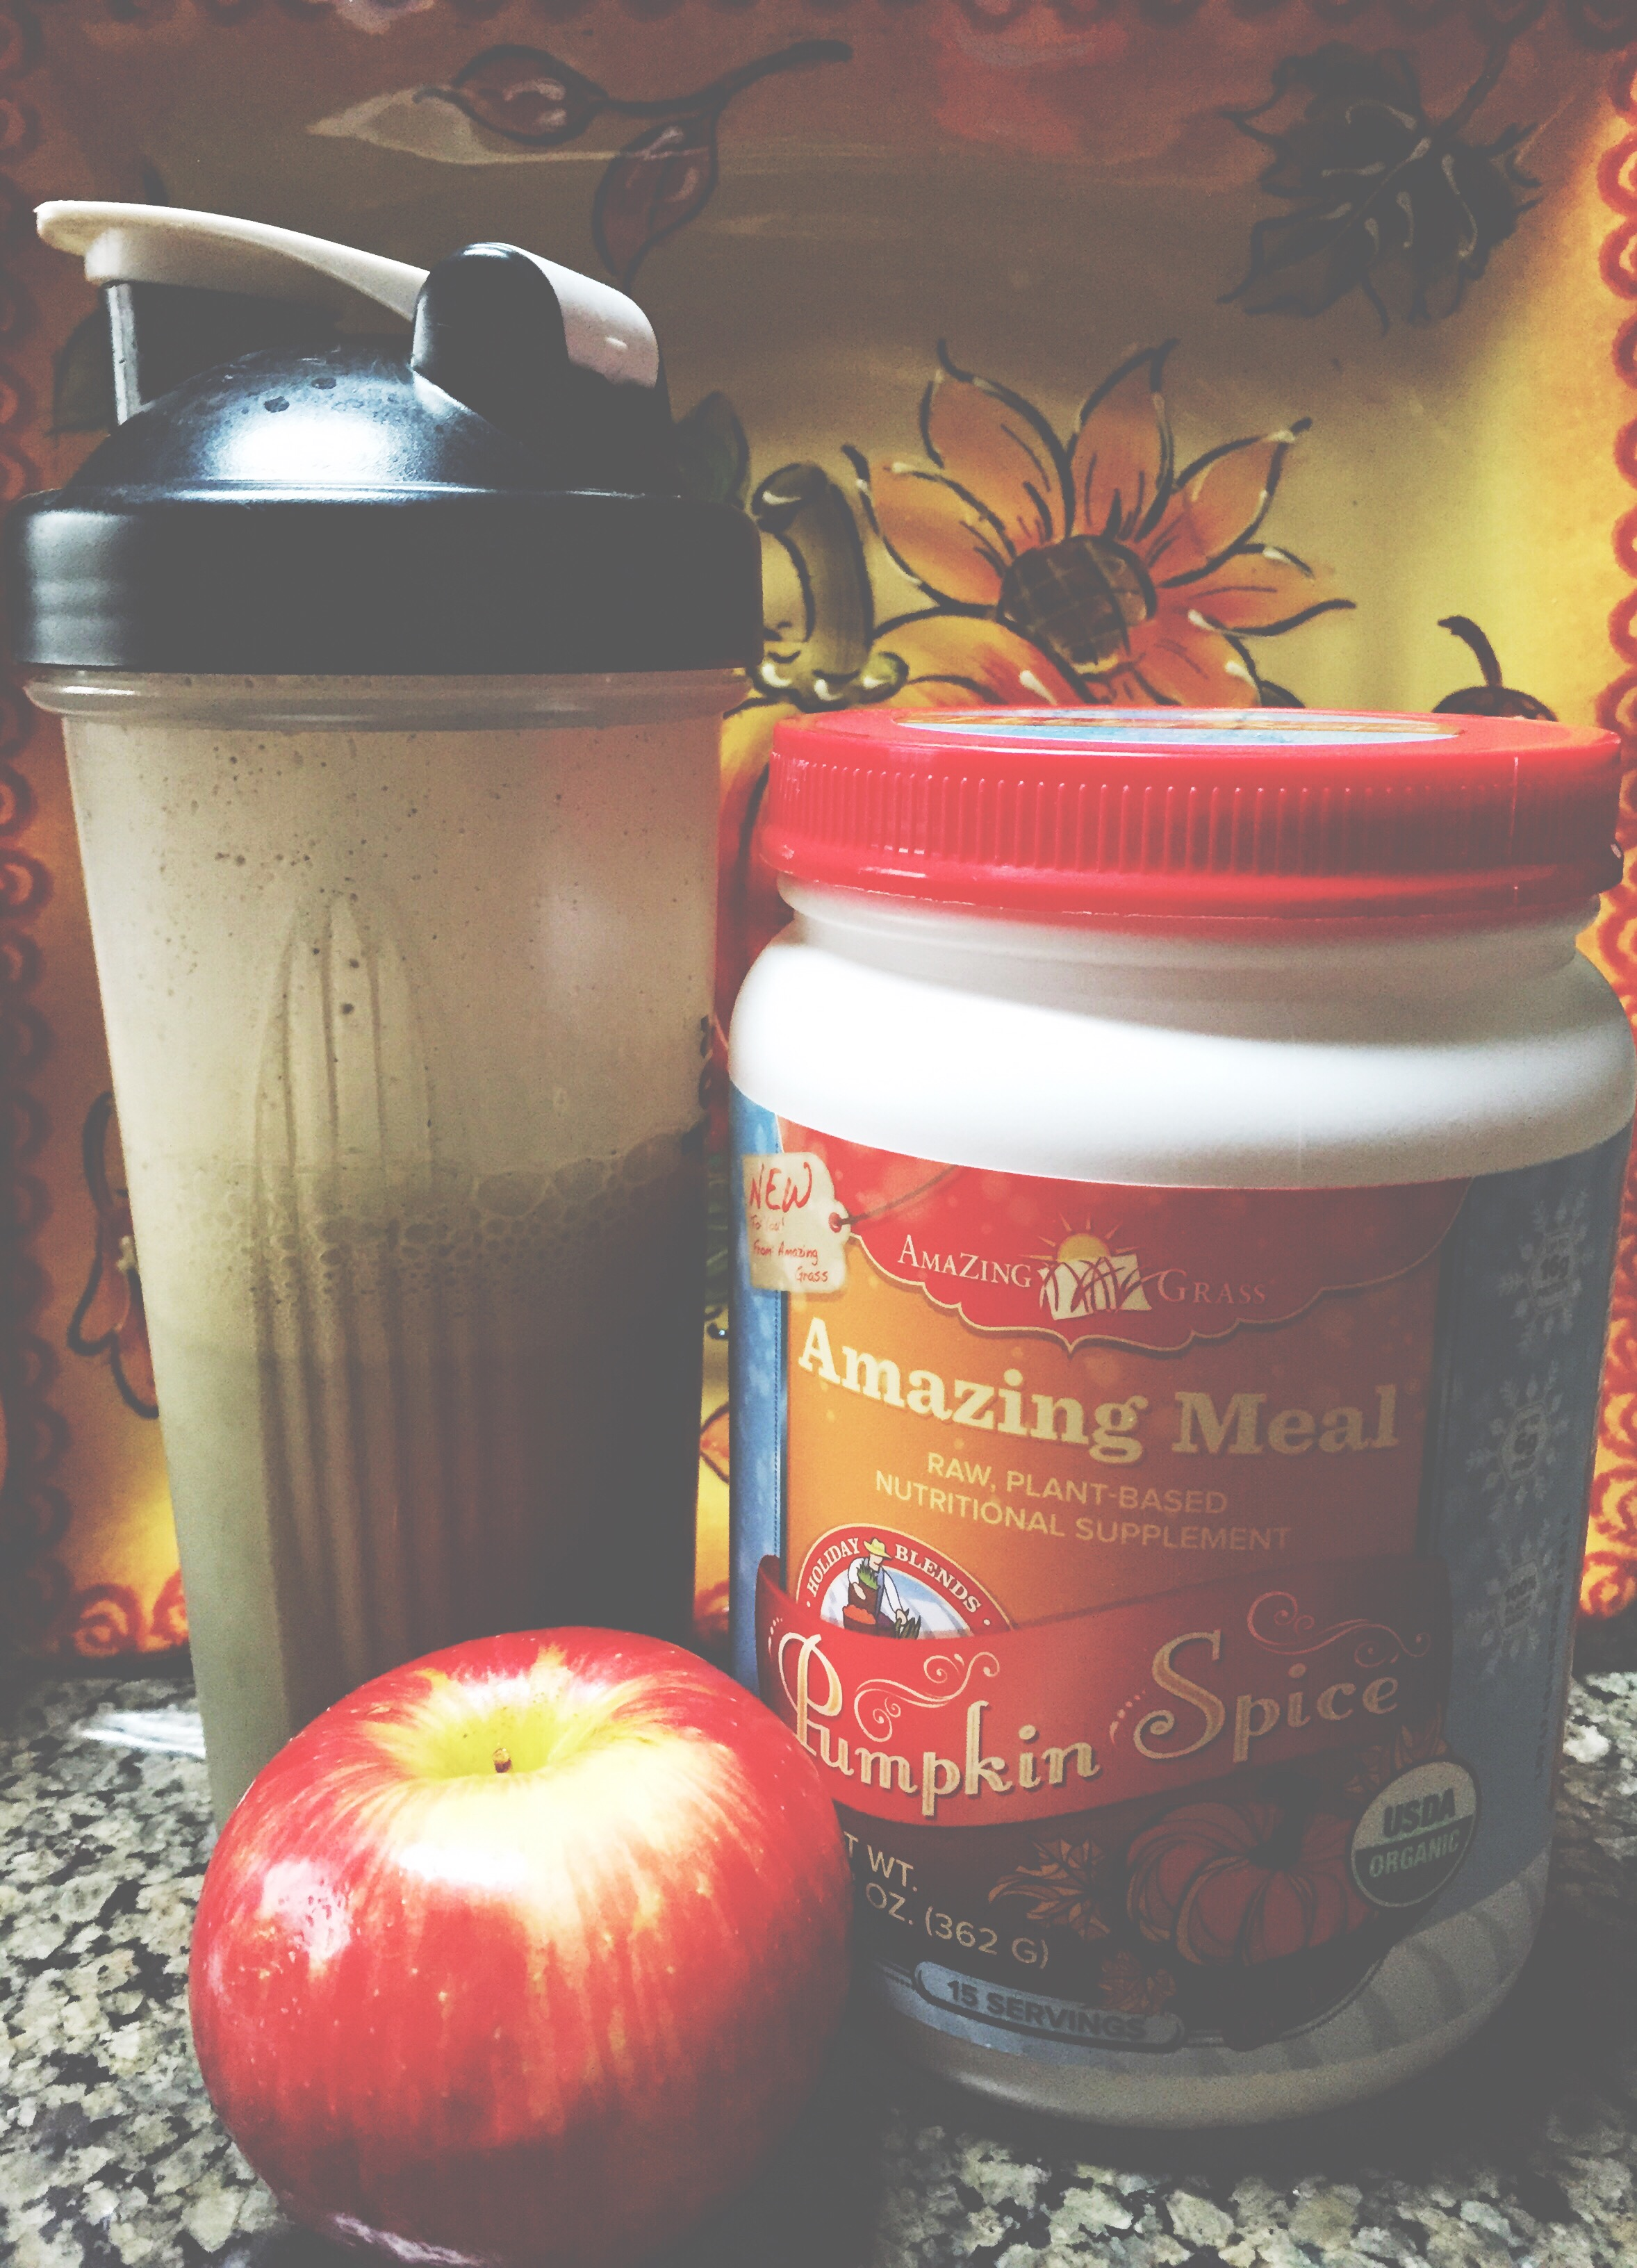 Amazing Grass Pumpkin Spice Amazing Meal | YES! Nutrition